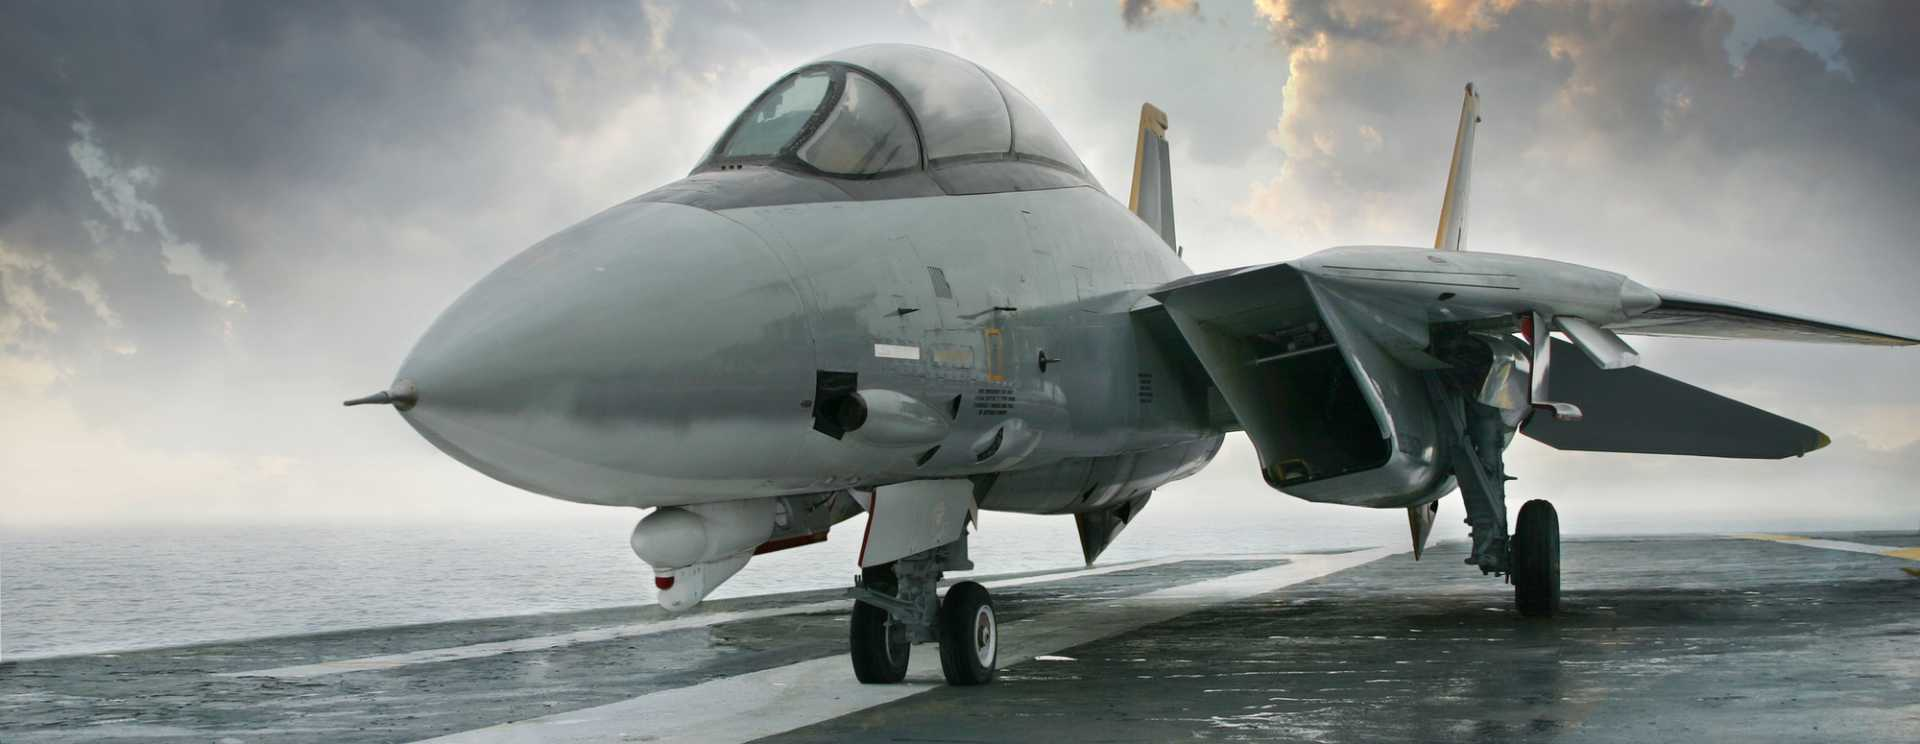 F-14 jet fighter on an aircraft carrier deck beneath dramatic sky – stock image courtesy of Depositphotos.